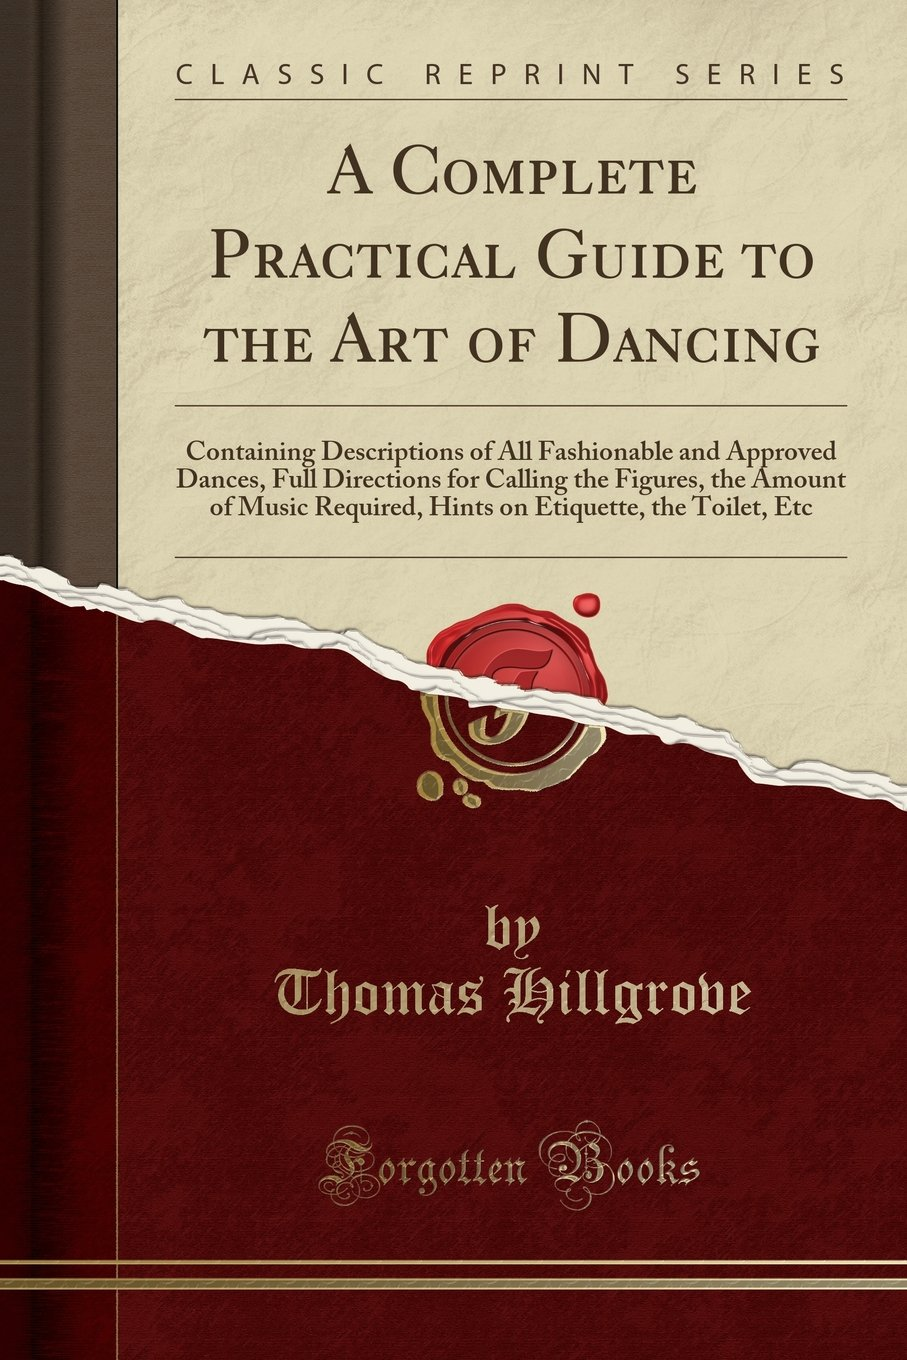 Download A Complete Practical Guide to the Art of Dancing: Containing Descriptions of All Fashionable and Approved Dances, Full Directions for Calling the ... Etiquette, the Toilet, Etc (Classic Reprint) pdf epub